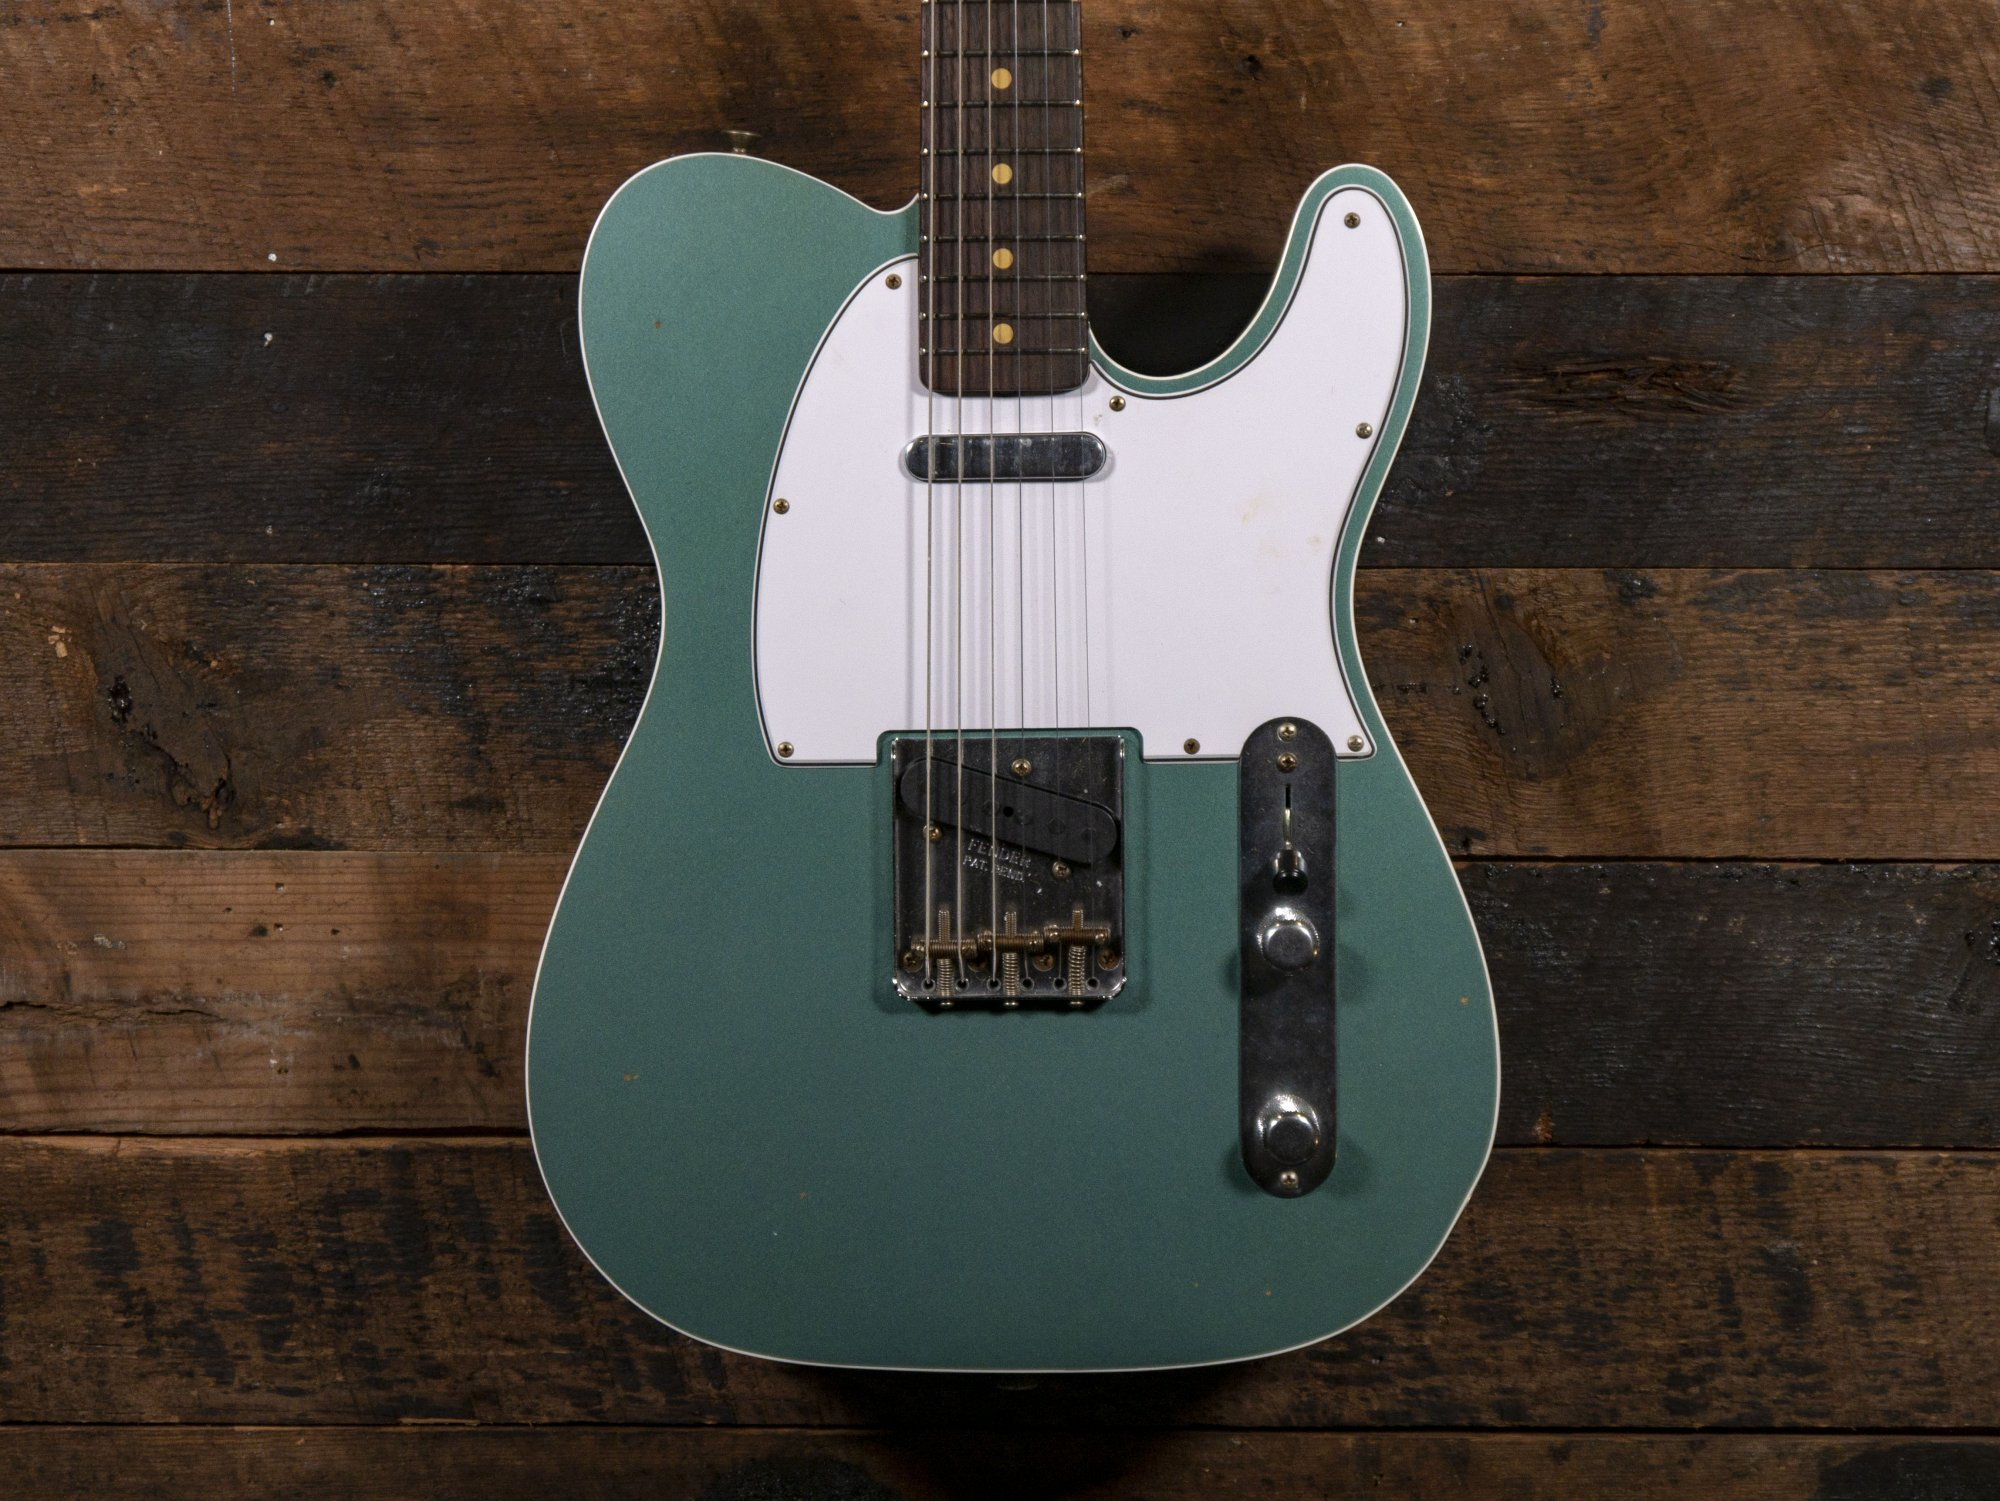 Fender Custom Shop 1960 Telecaster Faded Sherwood Green Metallic Journeyman Relic Handselected Serial Number ()